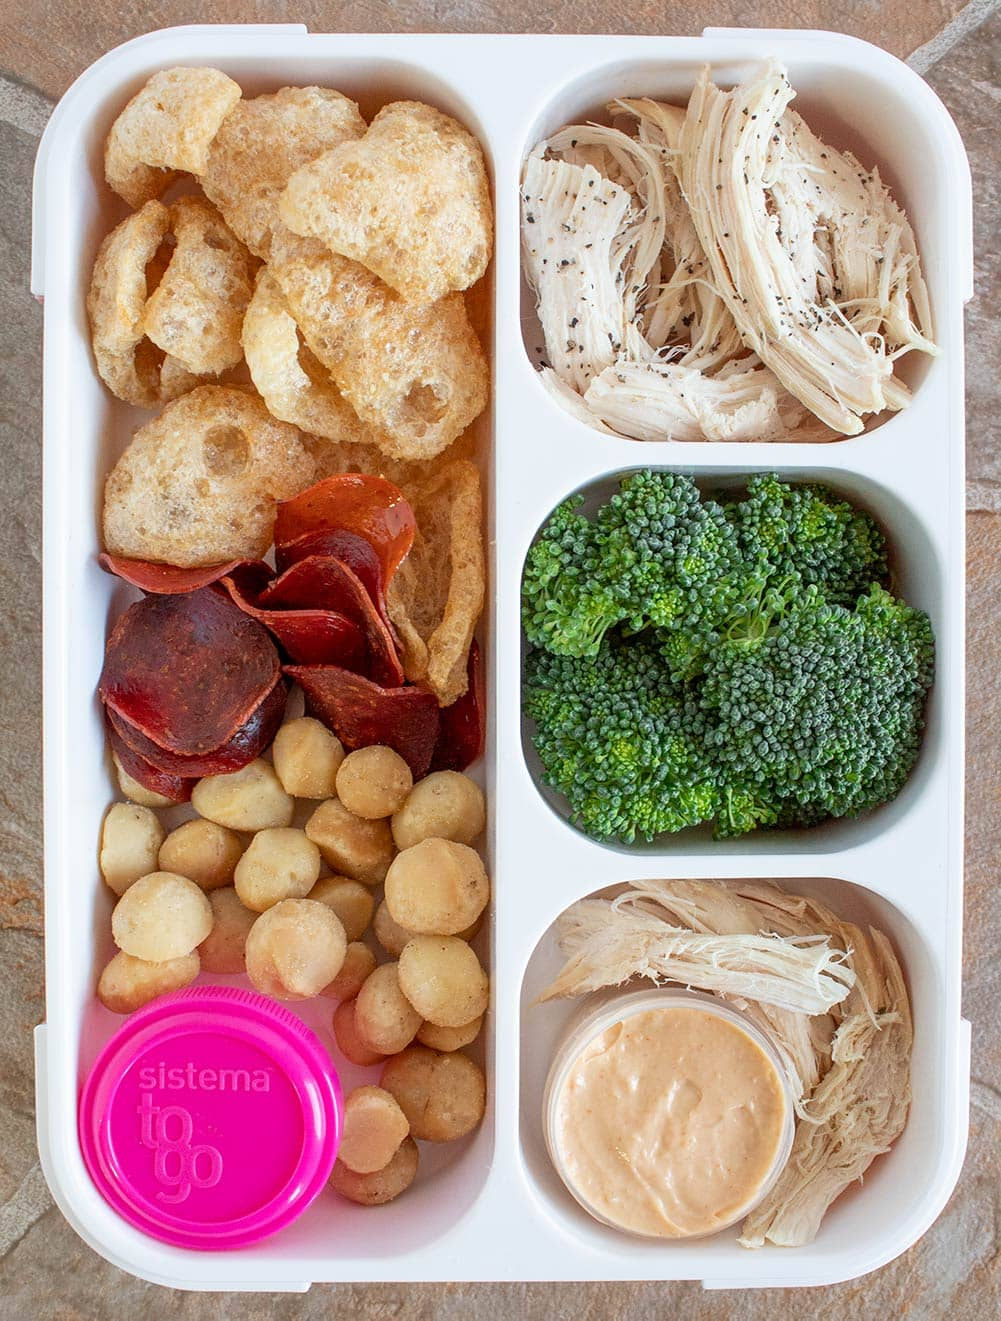 keto starbucks bistro box overhead view with four compartments and a variety of fresh vegetables and meats